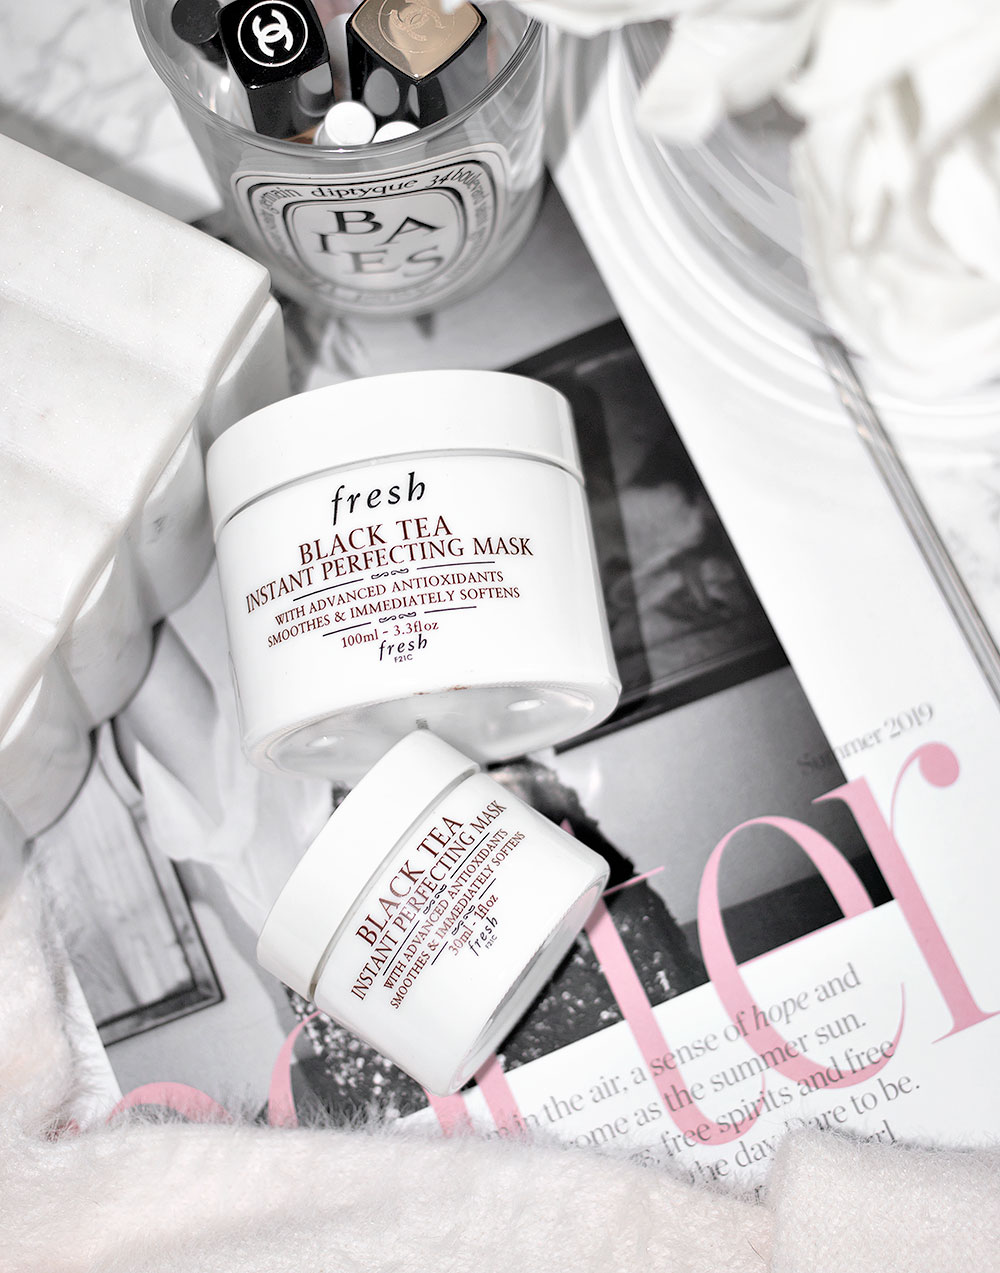 Fresh-Black-Tea-Instant-Perfecting-Mask-Results